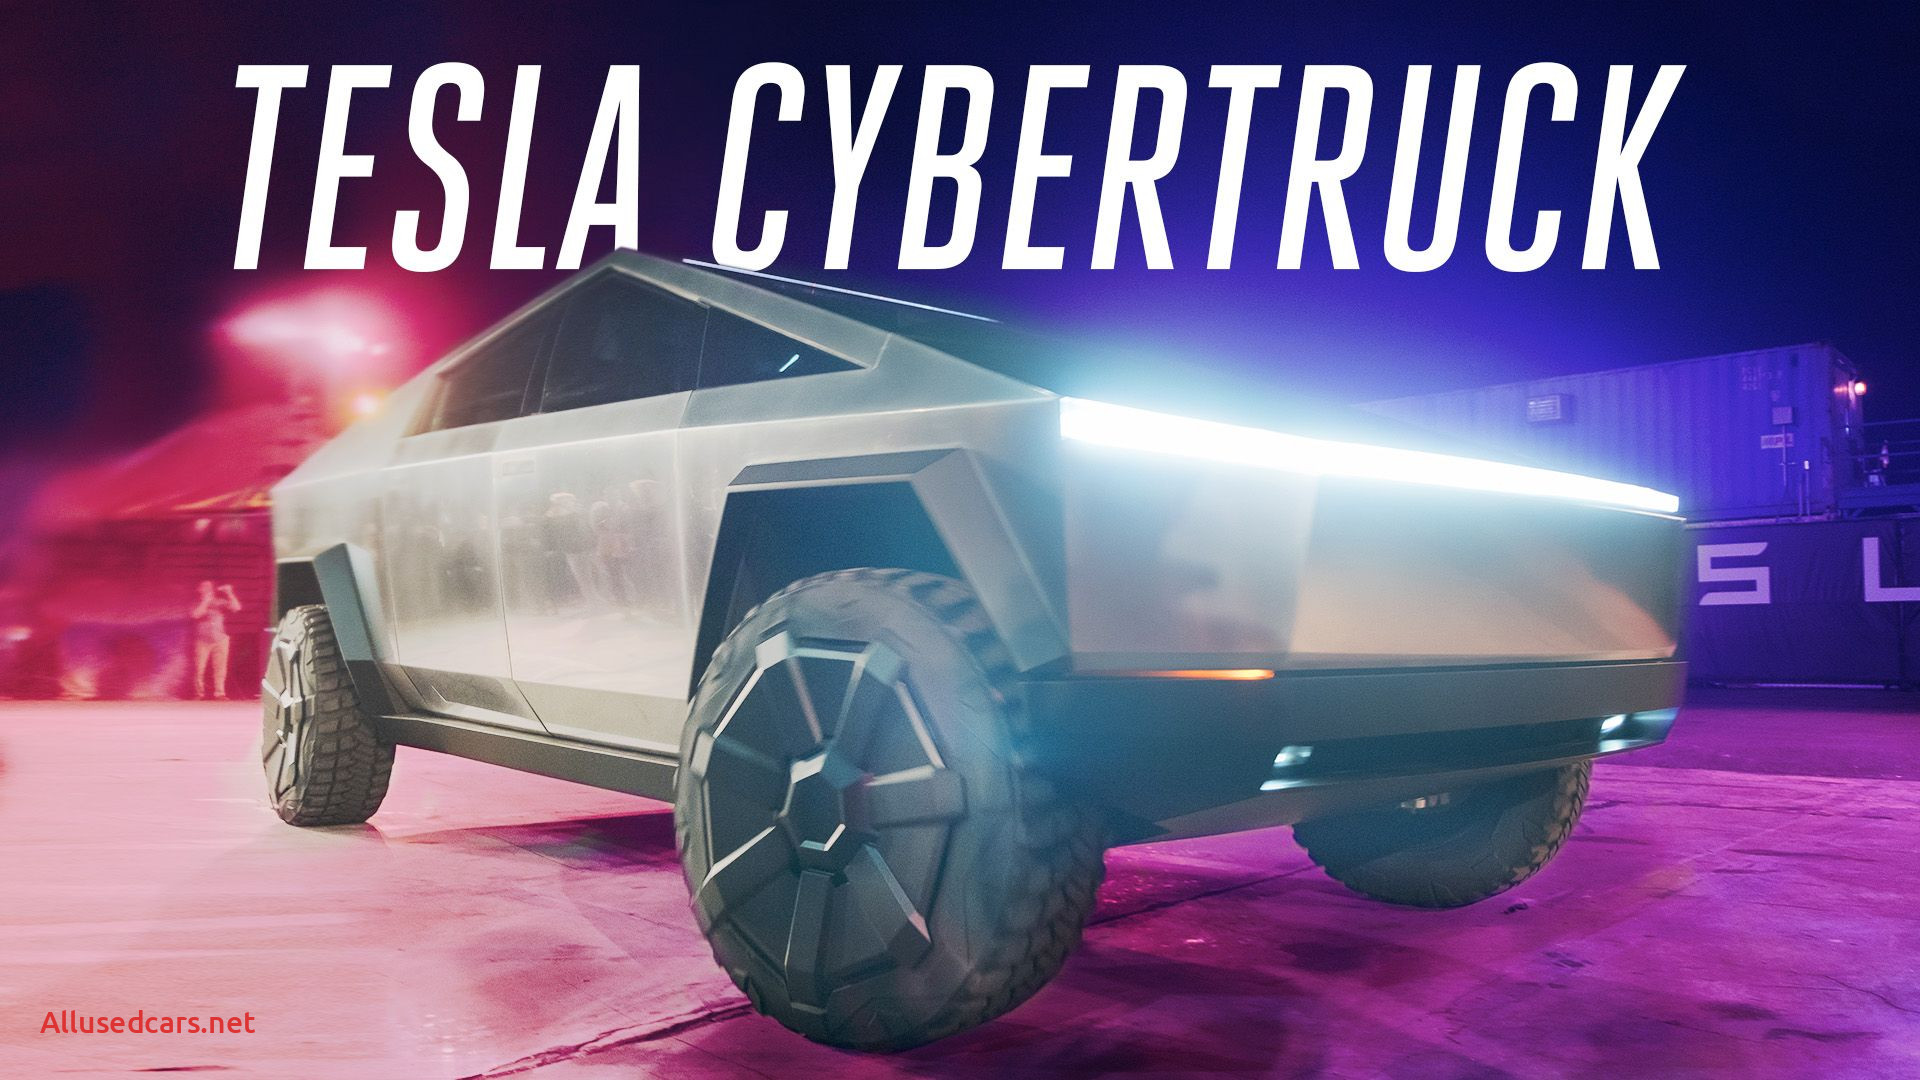 Is Tesla Cybertruck Real Unique Tesla Cybertruck Elon Musk Announces Electric Pickup Truck